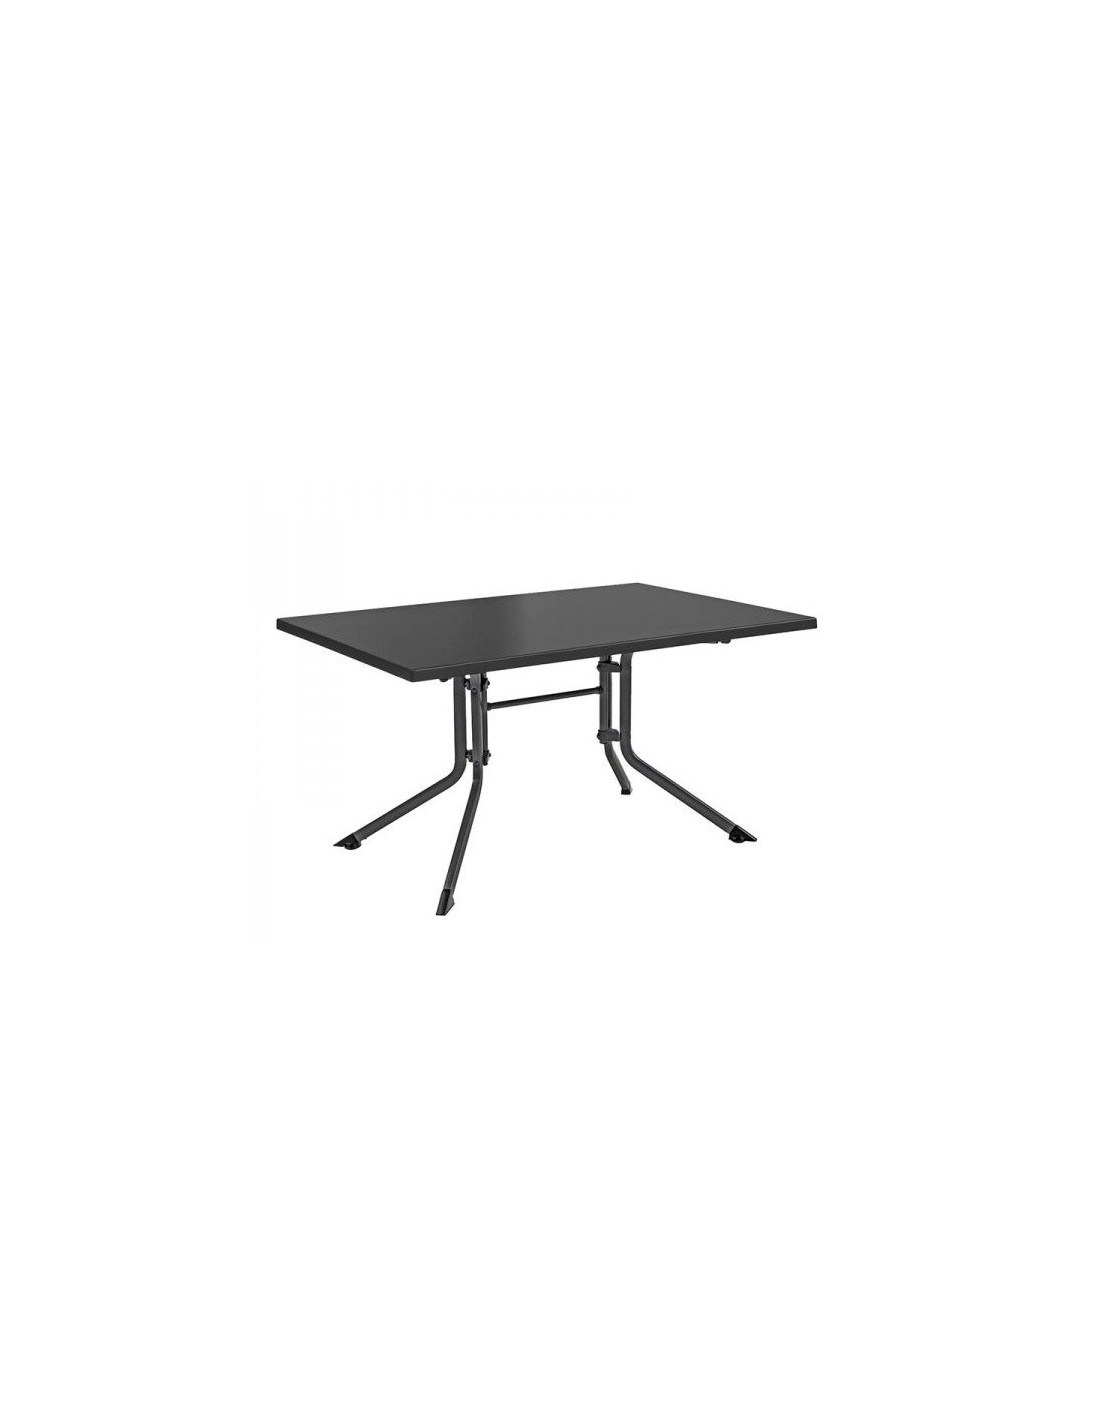 Table de jardin pliante carr e en aluminium mod le advantage - Table de jardin pliante ...